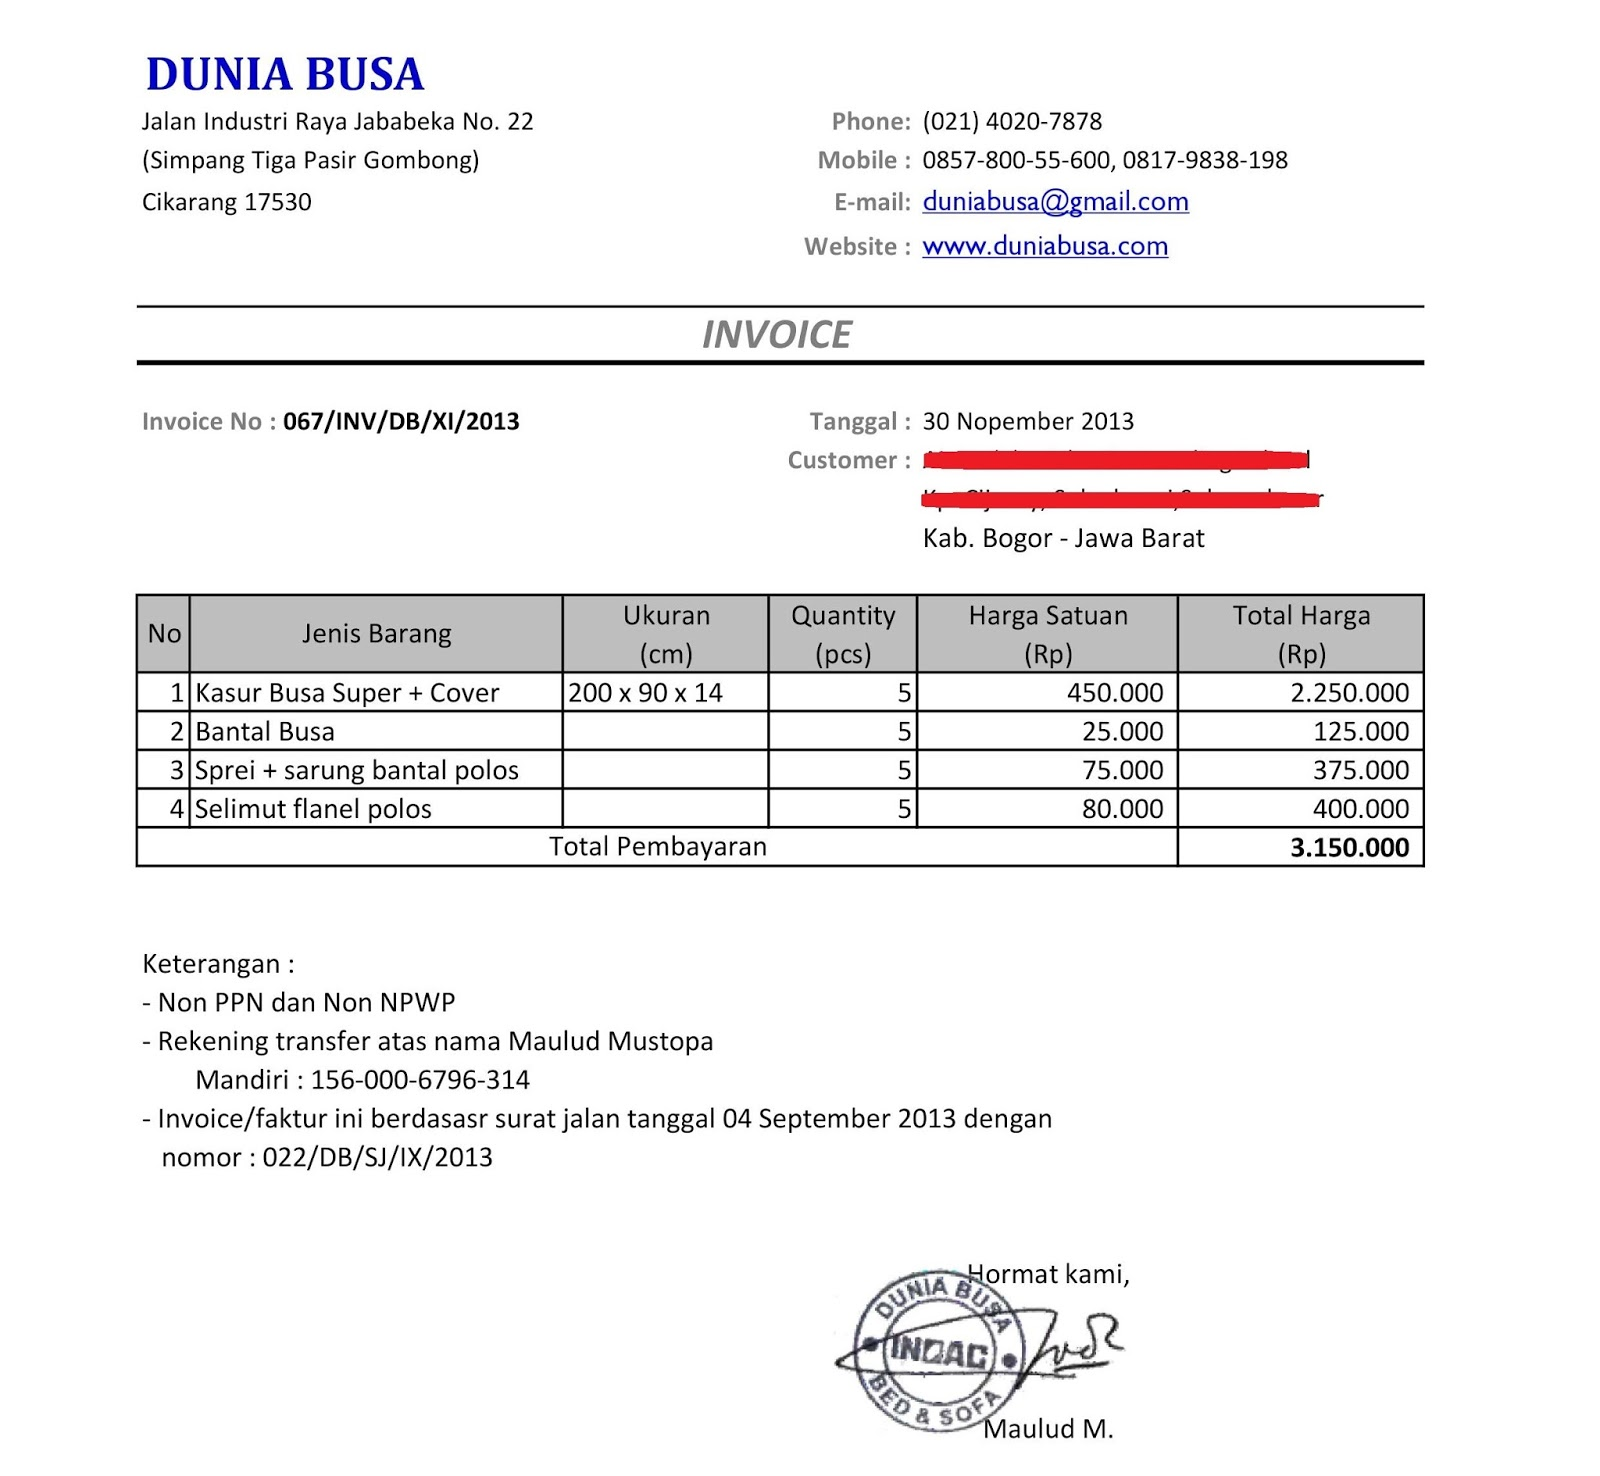 Centralasianshepherdus  Unique Free Invoice Online  Create Invoice Online  Invoice Template  With Gorgeous Contoh Format Invoice Atau Surat Tagihan  Brankas Arsip  Free Invoice Online With Delectable Cash Sale Receipt Template Word Also Print Receipt Book In Addition House Rent Receipt Sample And Donation Receipt Templates As Well As Download Receipt Template Word Additionally Get Lic Premium Paid Receipt Online From Sklepco With Centralasianshepherdus  Gorgeous Free Invoice Online  Create Invoice Online  Invoice Template  With Delectable Contoh Format Invoice Atau Surat Tagihan  Brankas Arsip  Free Invoice Online And Unique Cash Sale Receipt Template Word Also Print Receipt Book In Addition House Rent Receipt Sample From Sklepco